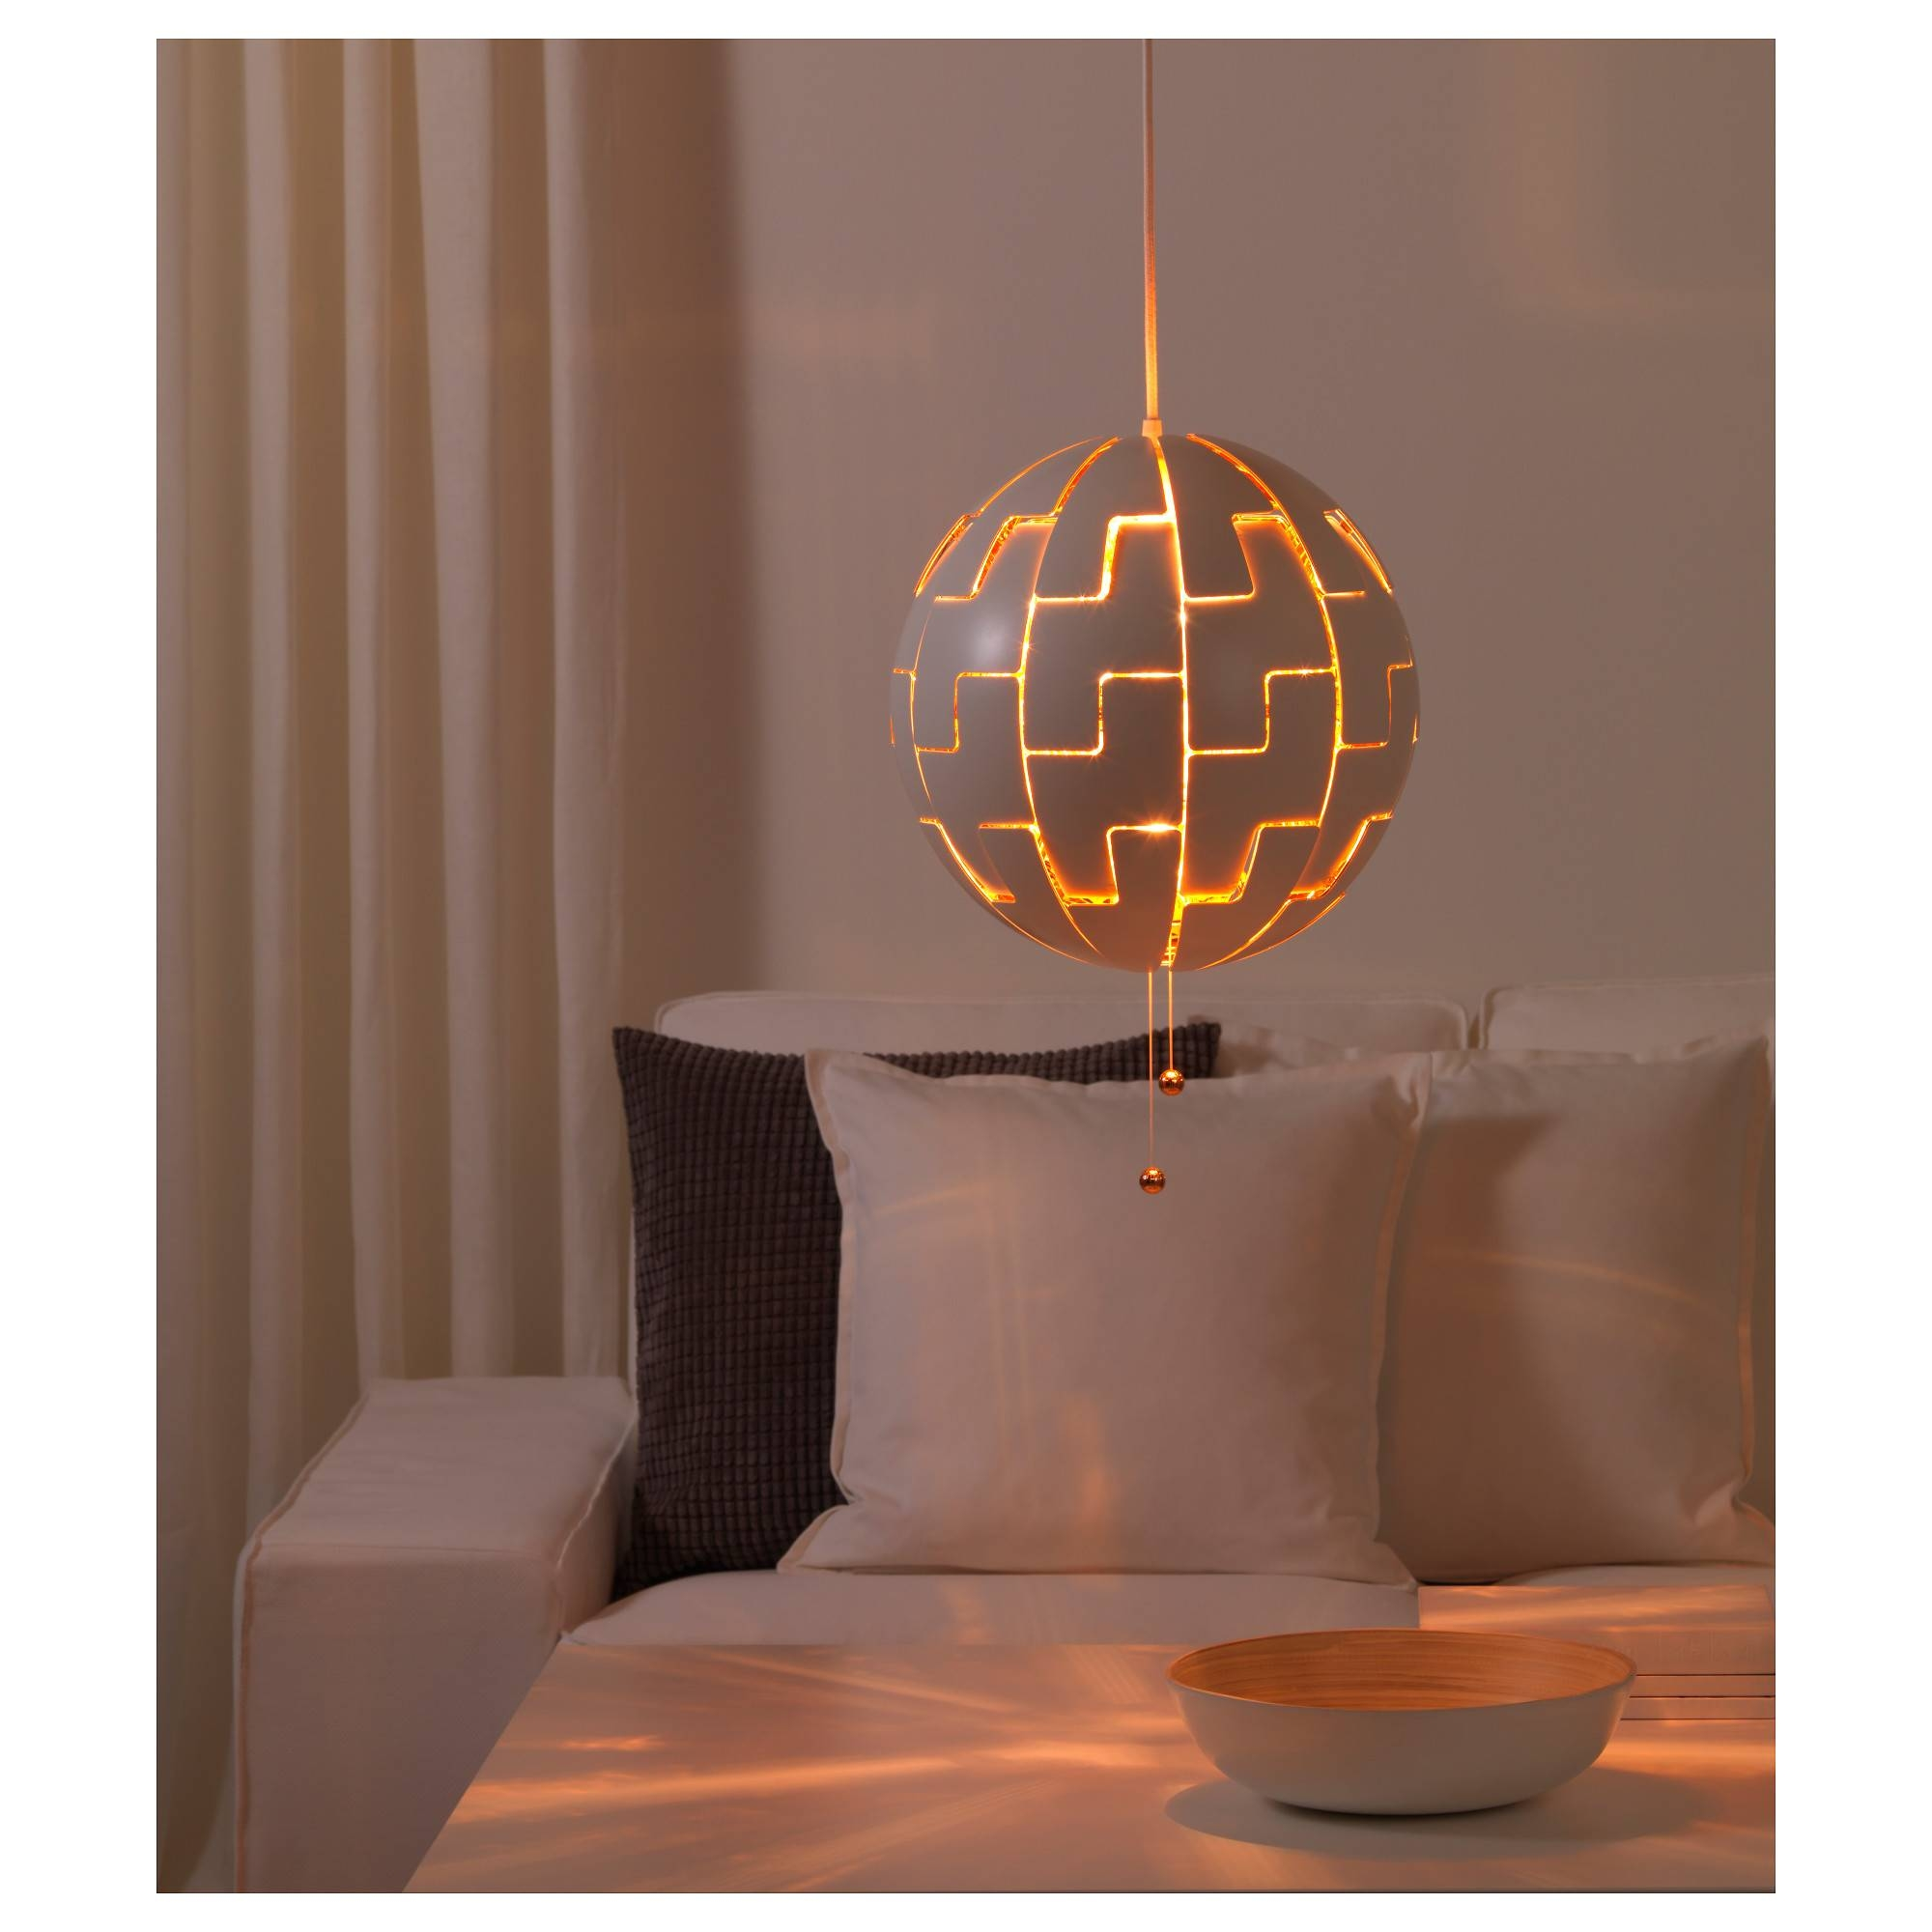 Ikea Ps 2014 Pendant Lamp White/copper-Colour - Ikea within Ikea Globe Pendant Lights (Image 9 of 15)